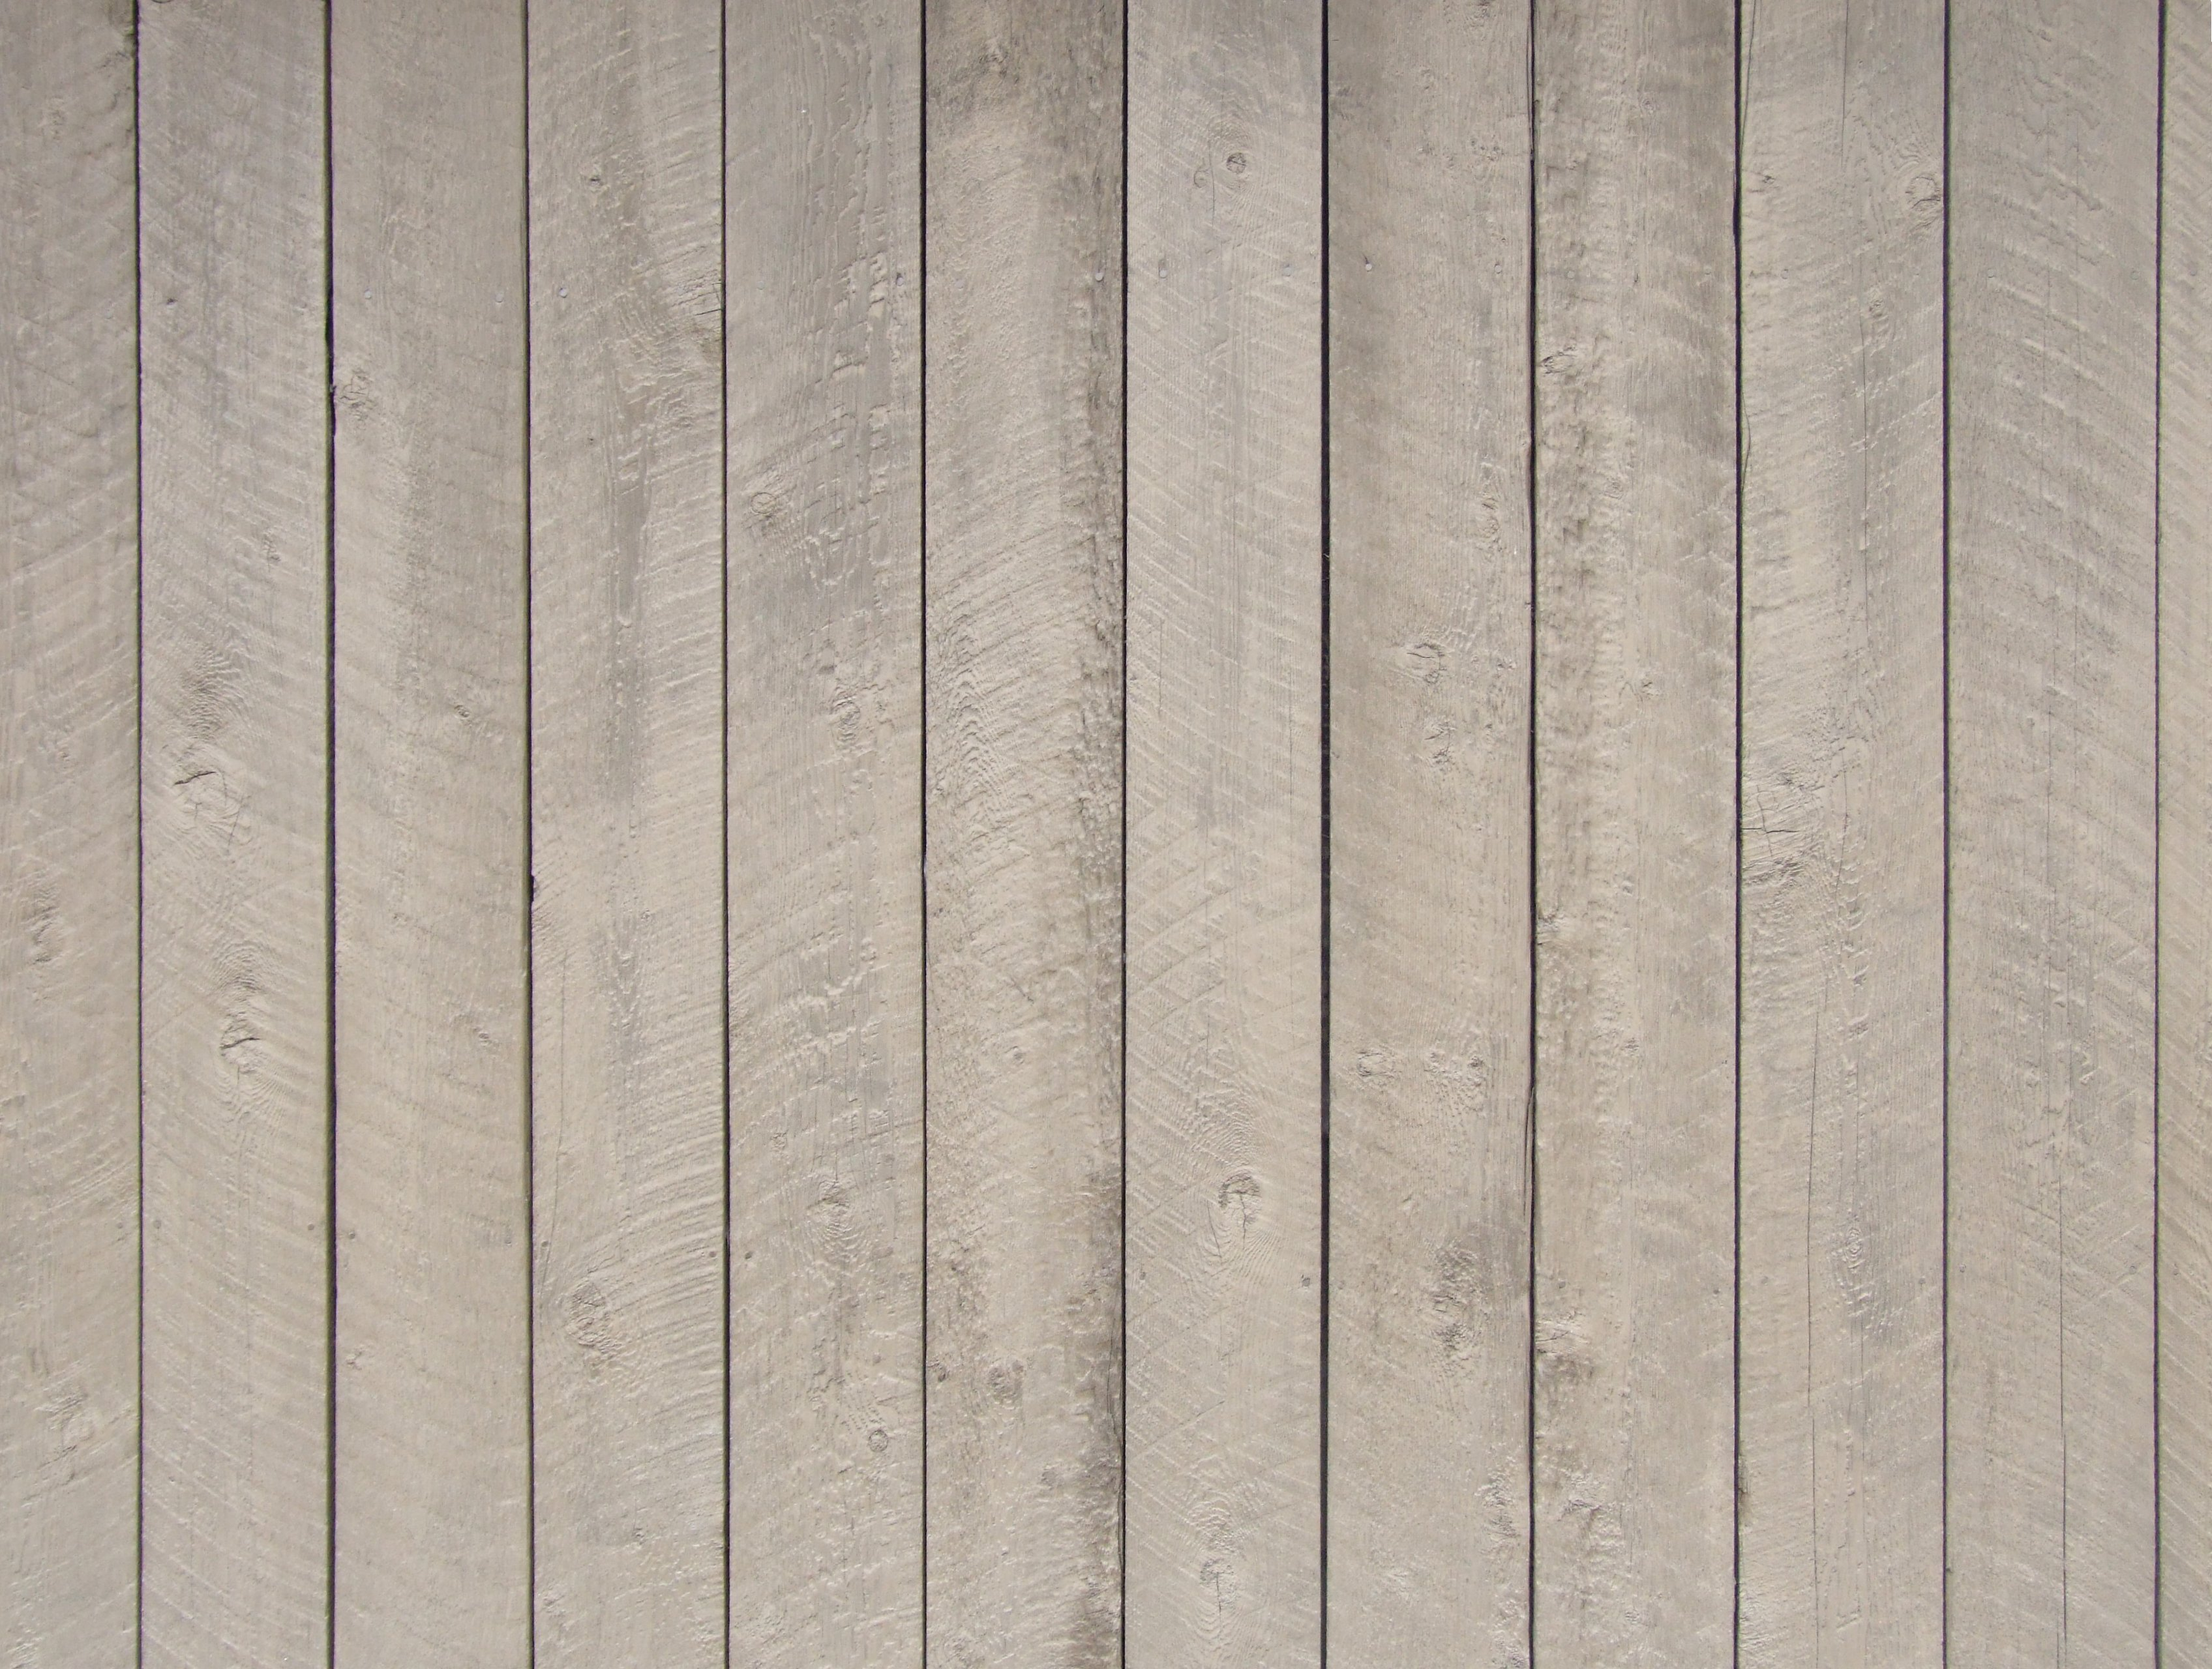 Light Wood Panel Texture Vector Black And White Home Design Jobs